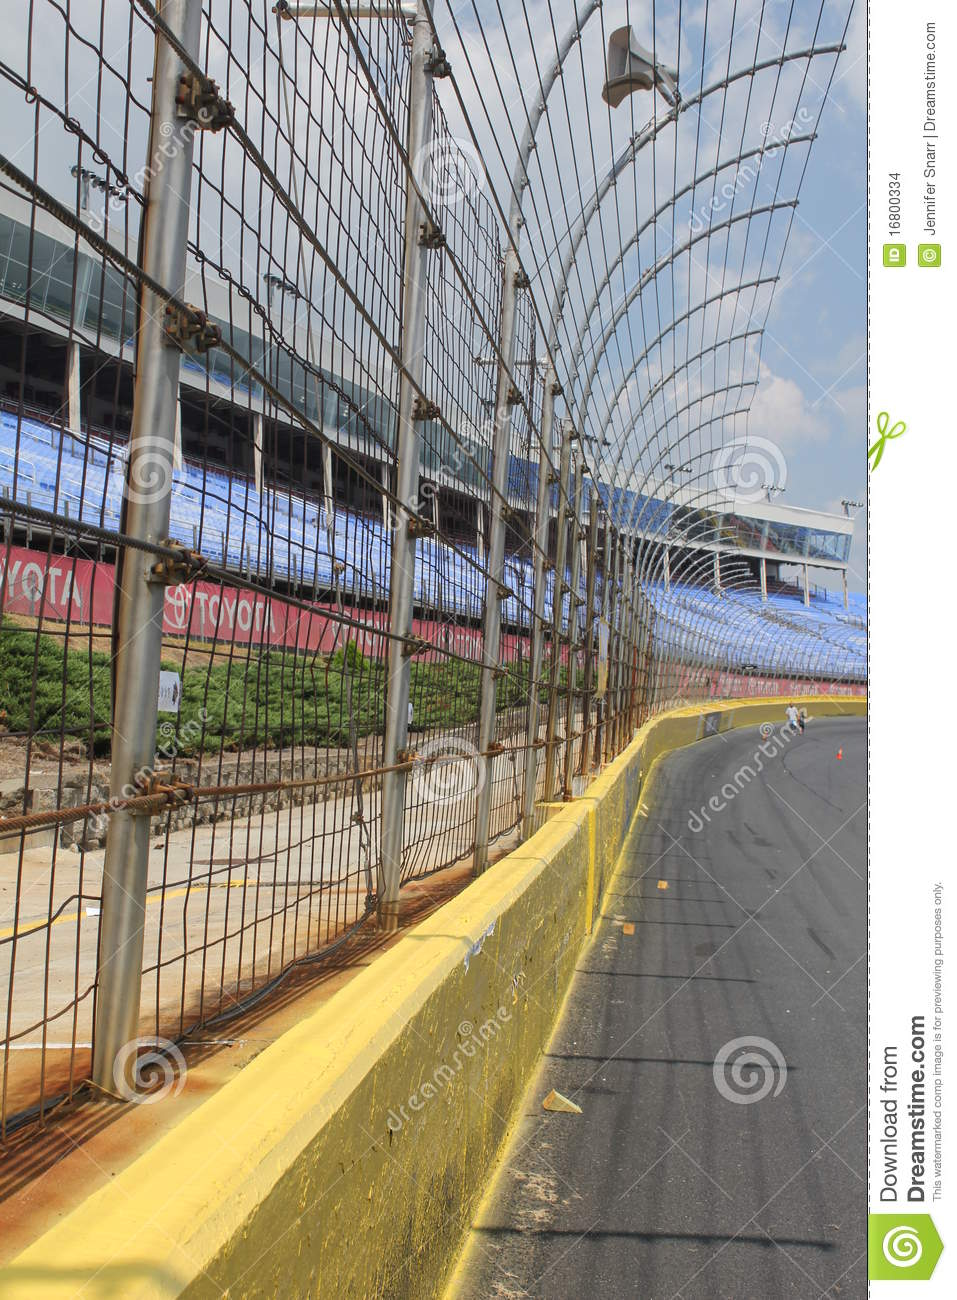 Lowes motor speedway racetrack editorial stock image for Lowe s motor speedway